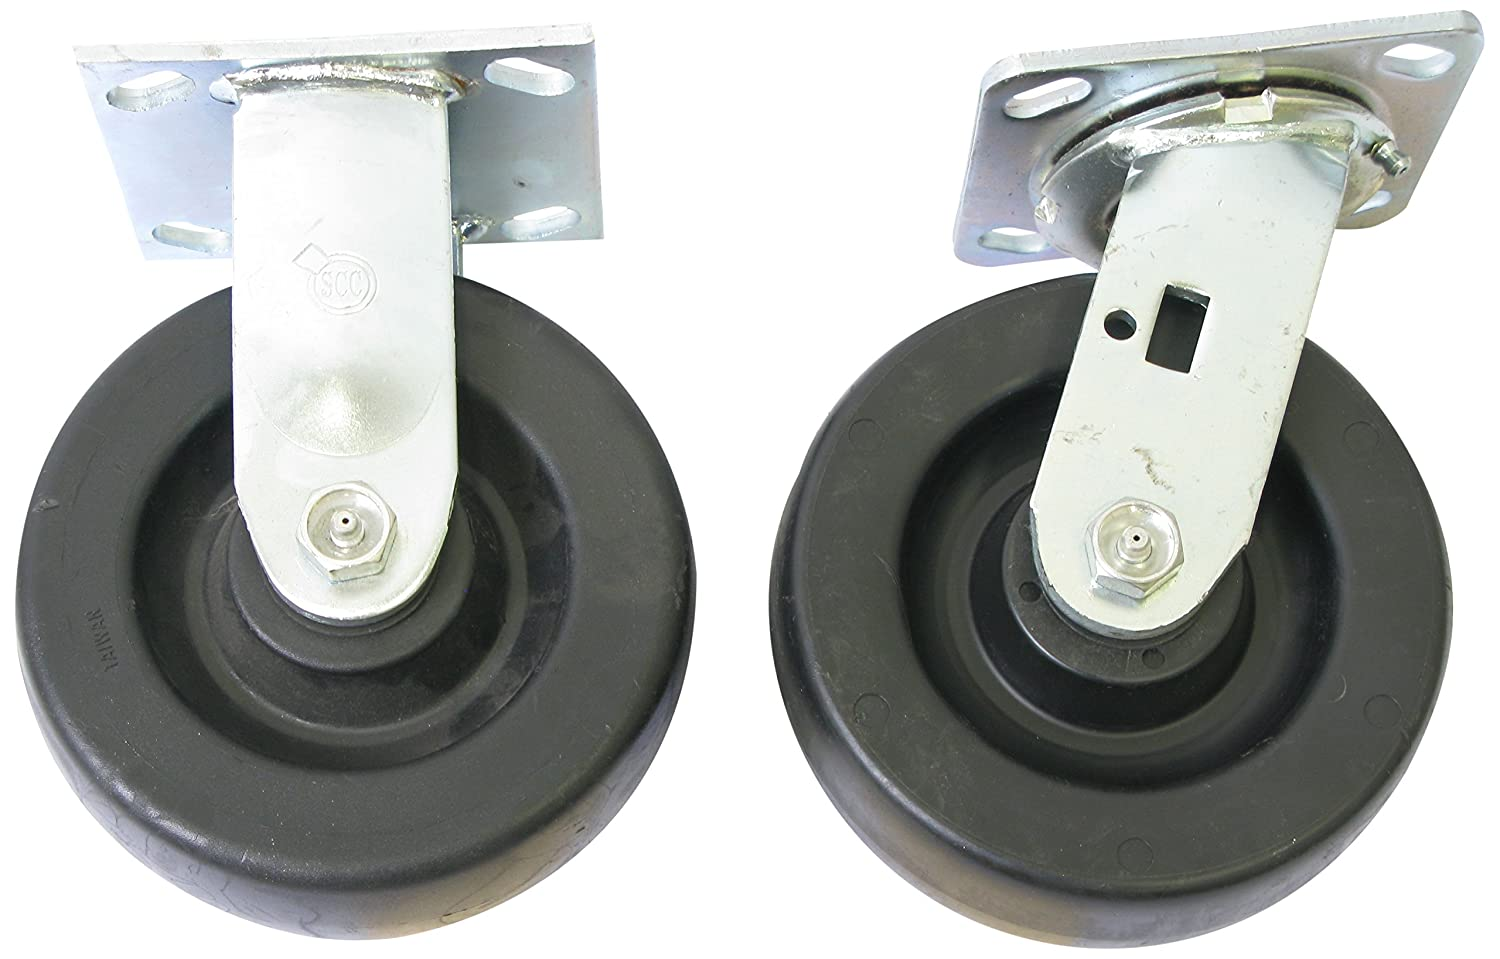 2000 Pound Capacity Wesco Industrial Products 250049 6 Diameter Polyolefin Wheel Rigid and Swivel Caster